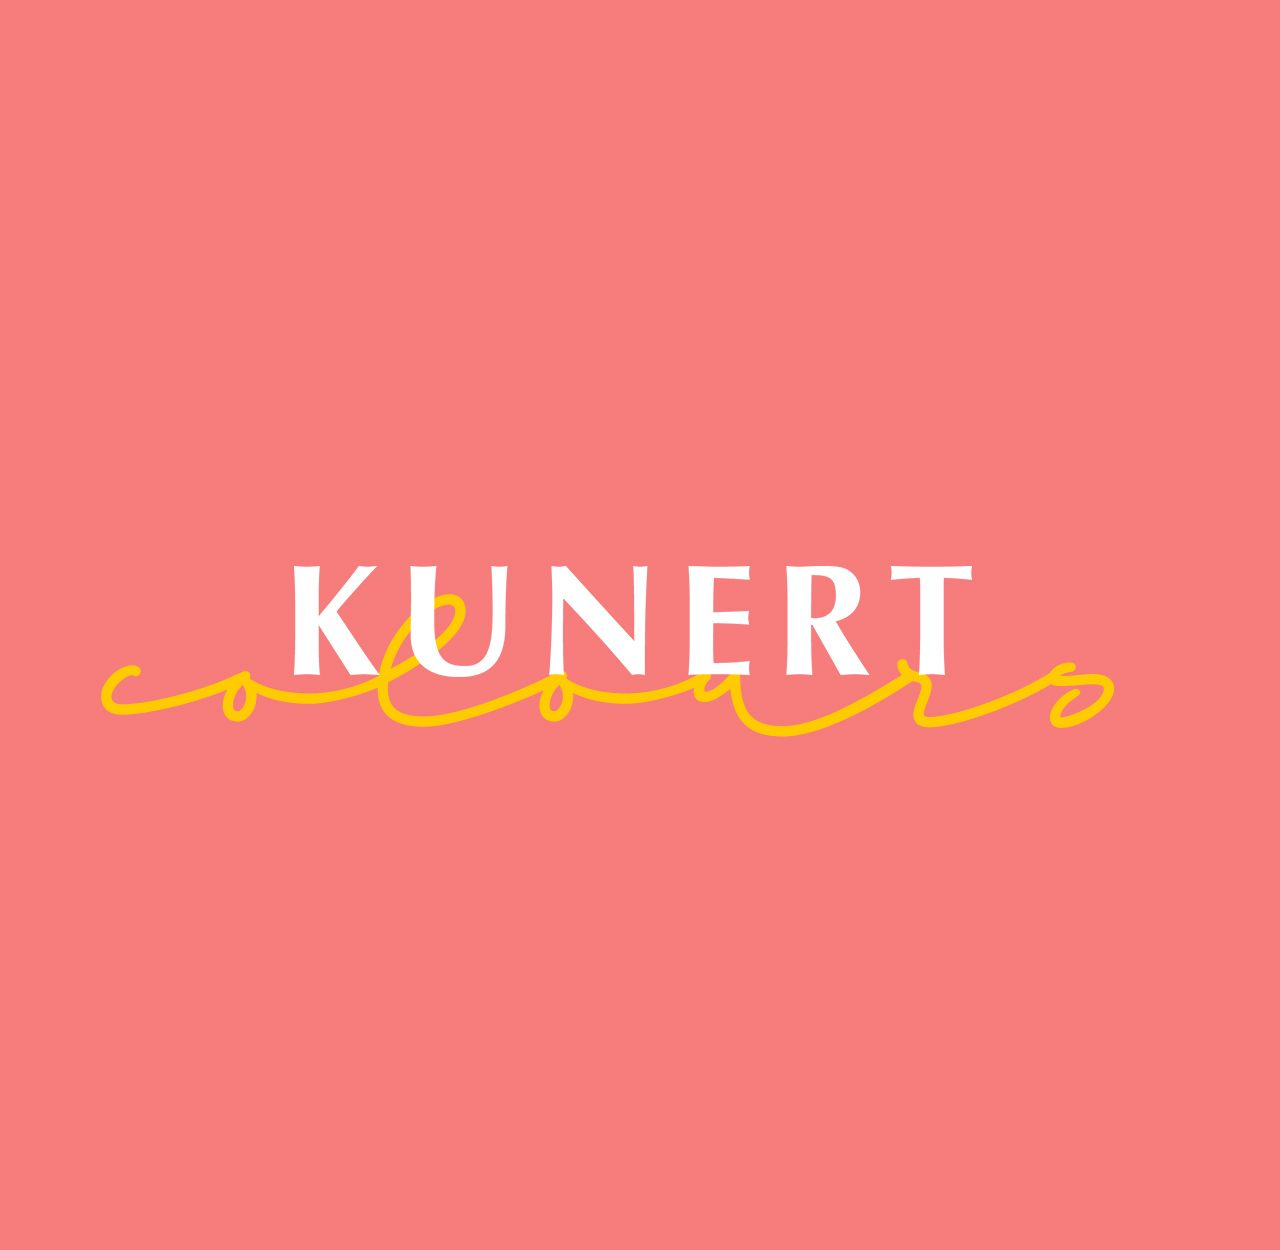 Kunert Colours logo